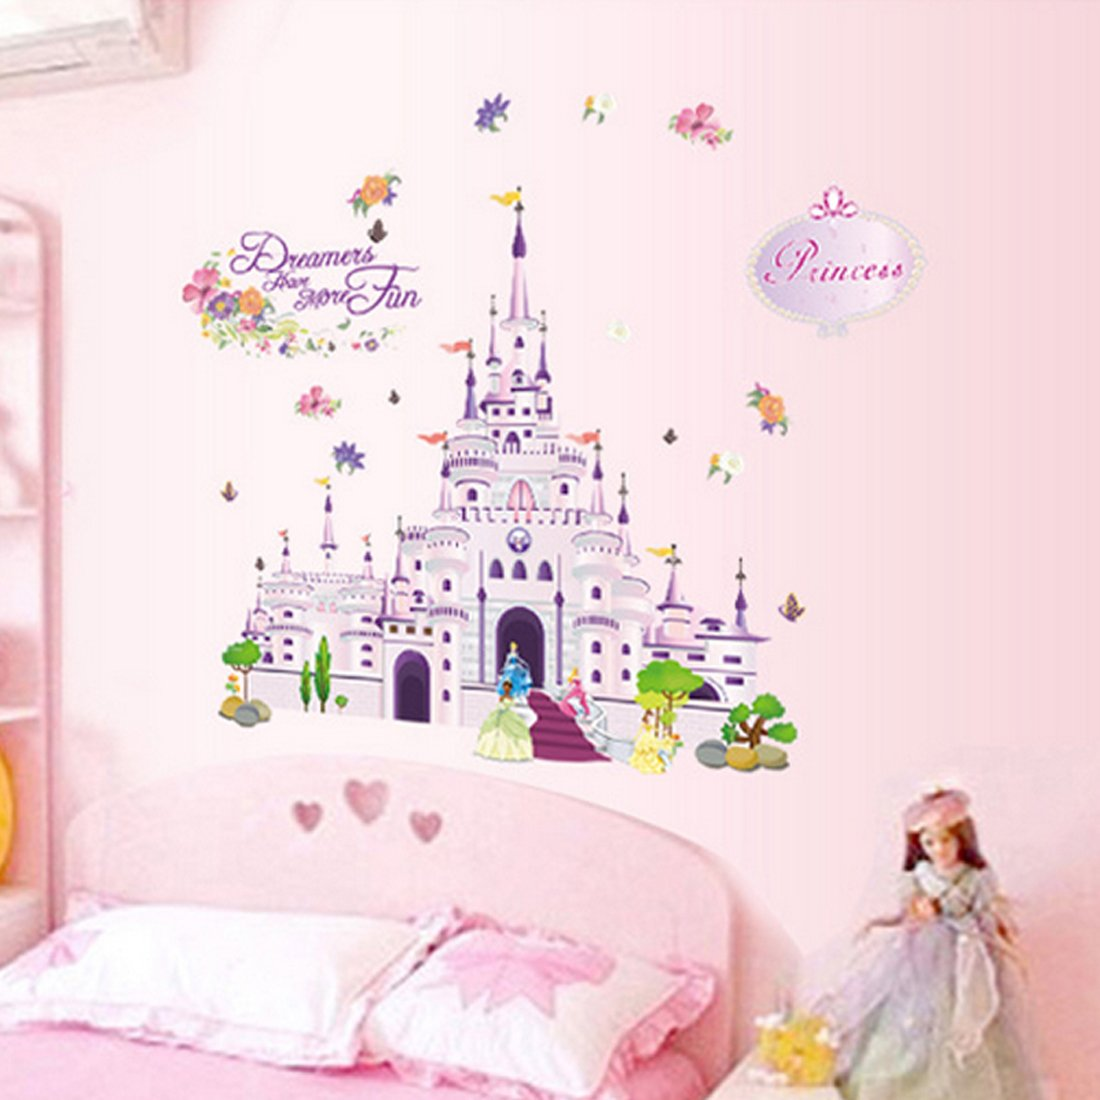 Cartoon Castle Wall Decal Home Sticker Paper Removable Living Room Bedroom Art Picture DIY Mural Girls Boys kids Nursery Baby Playroom Decoration + Gift Colorful Butterflies fashionbeautybuy